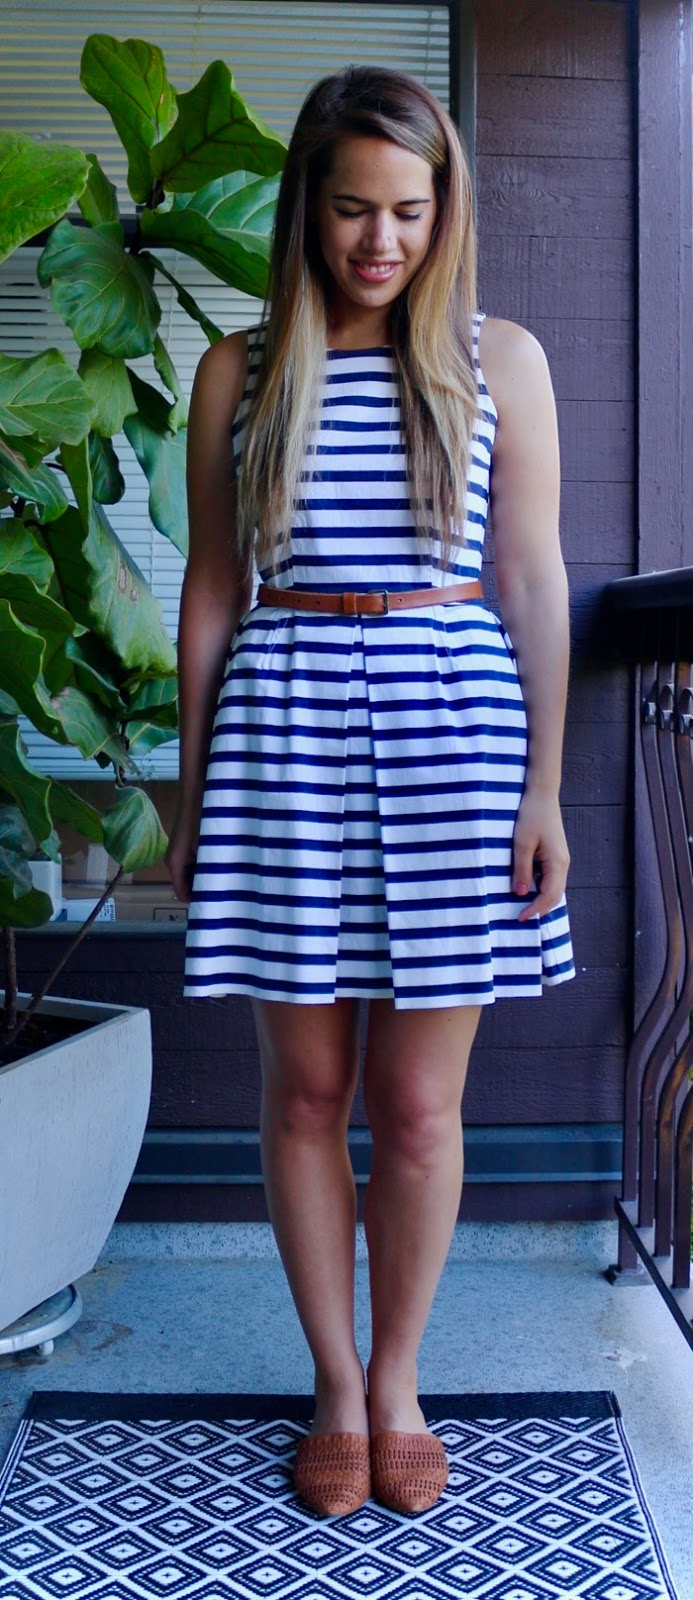 Jules in Flats - Striped Fit and Flare Dress